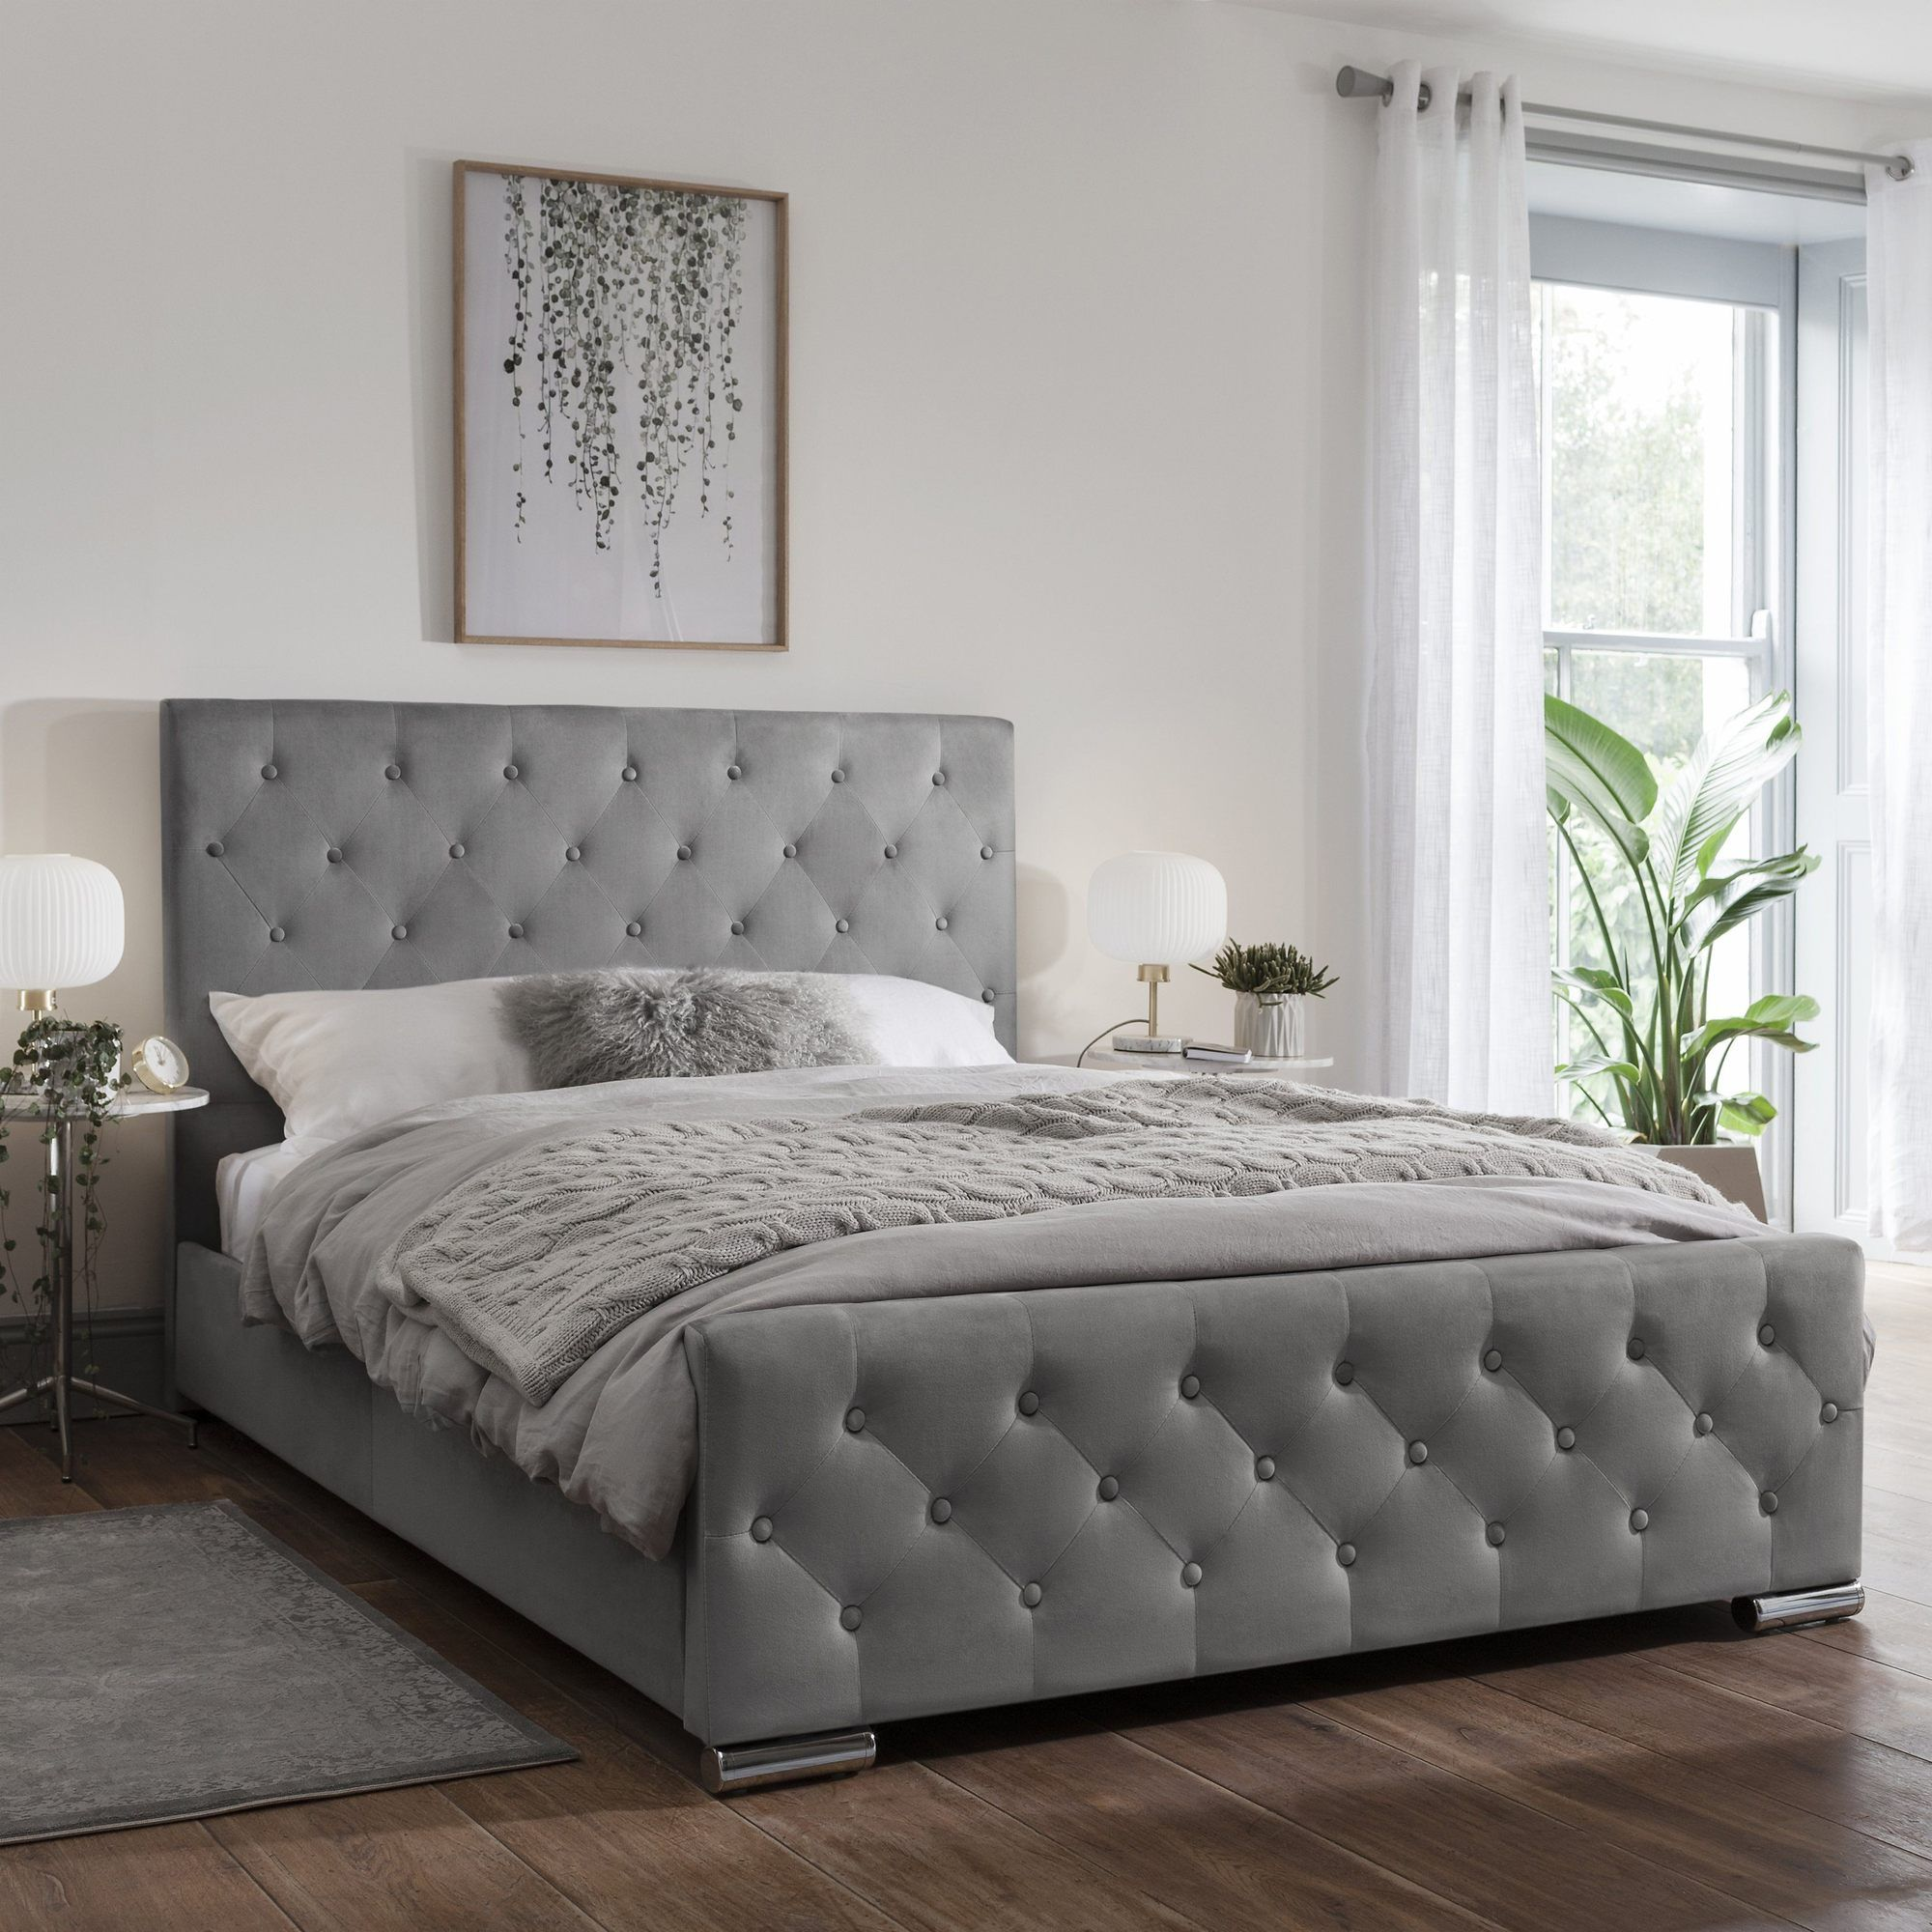 Grey Fabric Double Bed Frame In 2020 Upholstered Bed Frame Fabric Bed Frame Grey Bed Frame